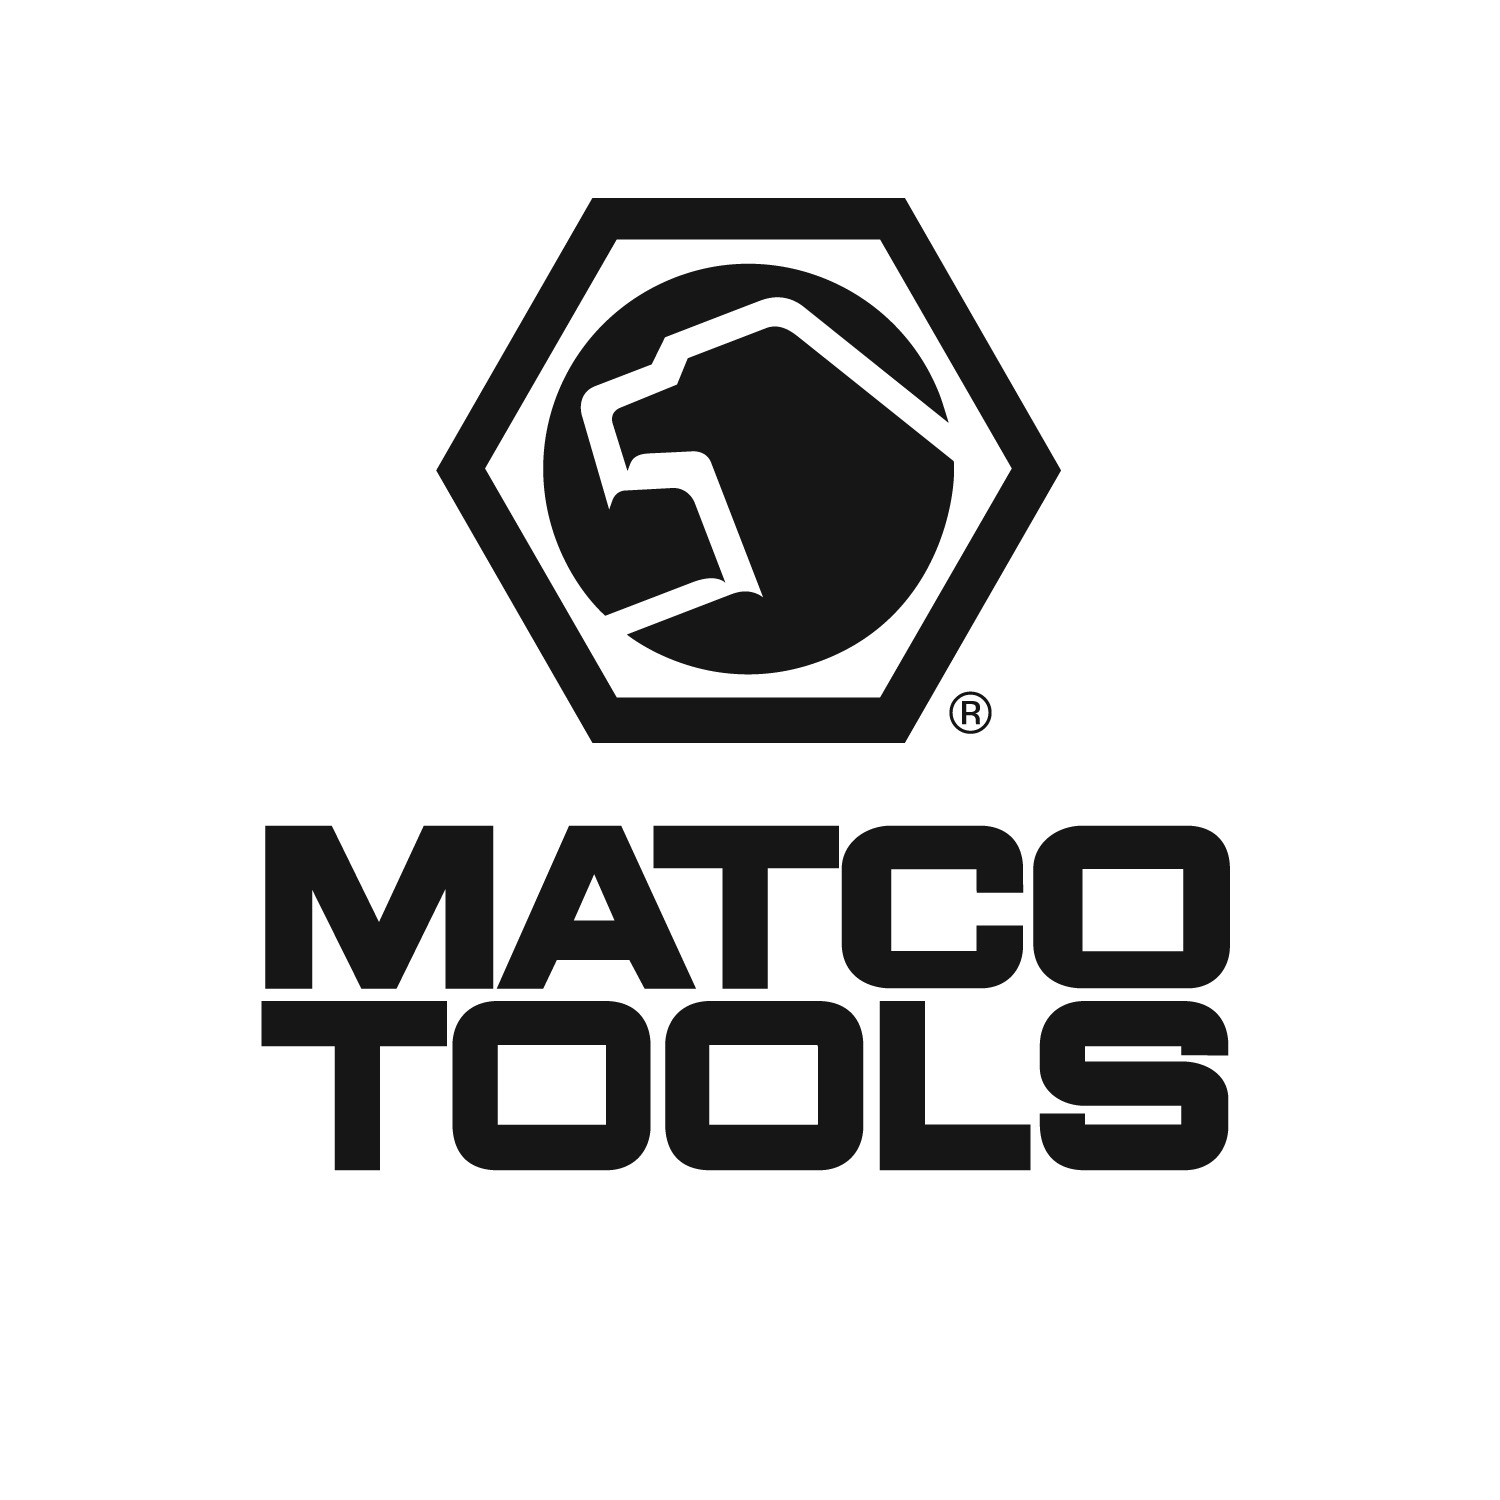 Hand Tools Amp Automotive Tools Franchise Business